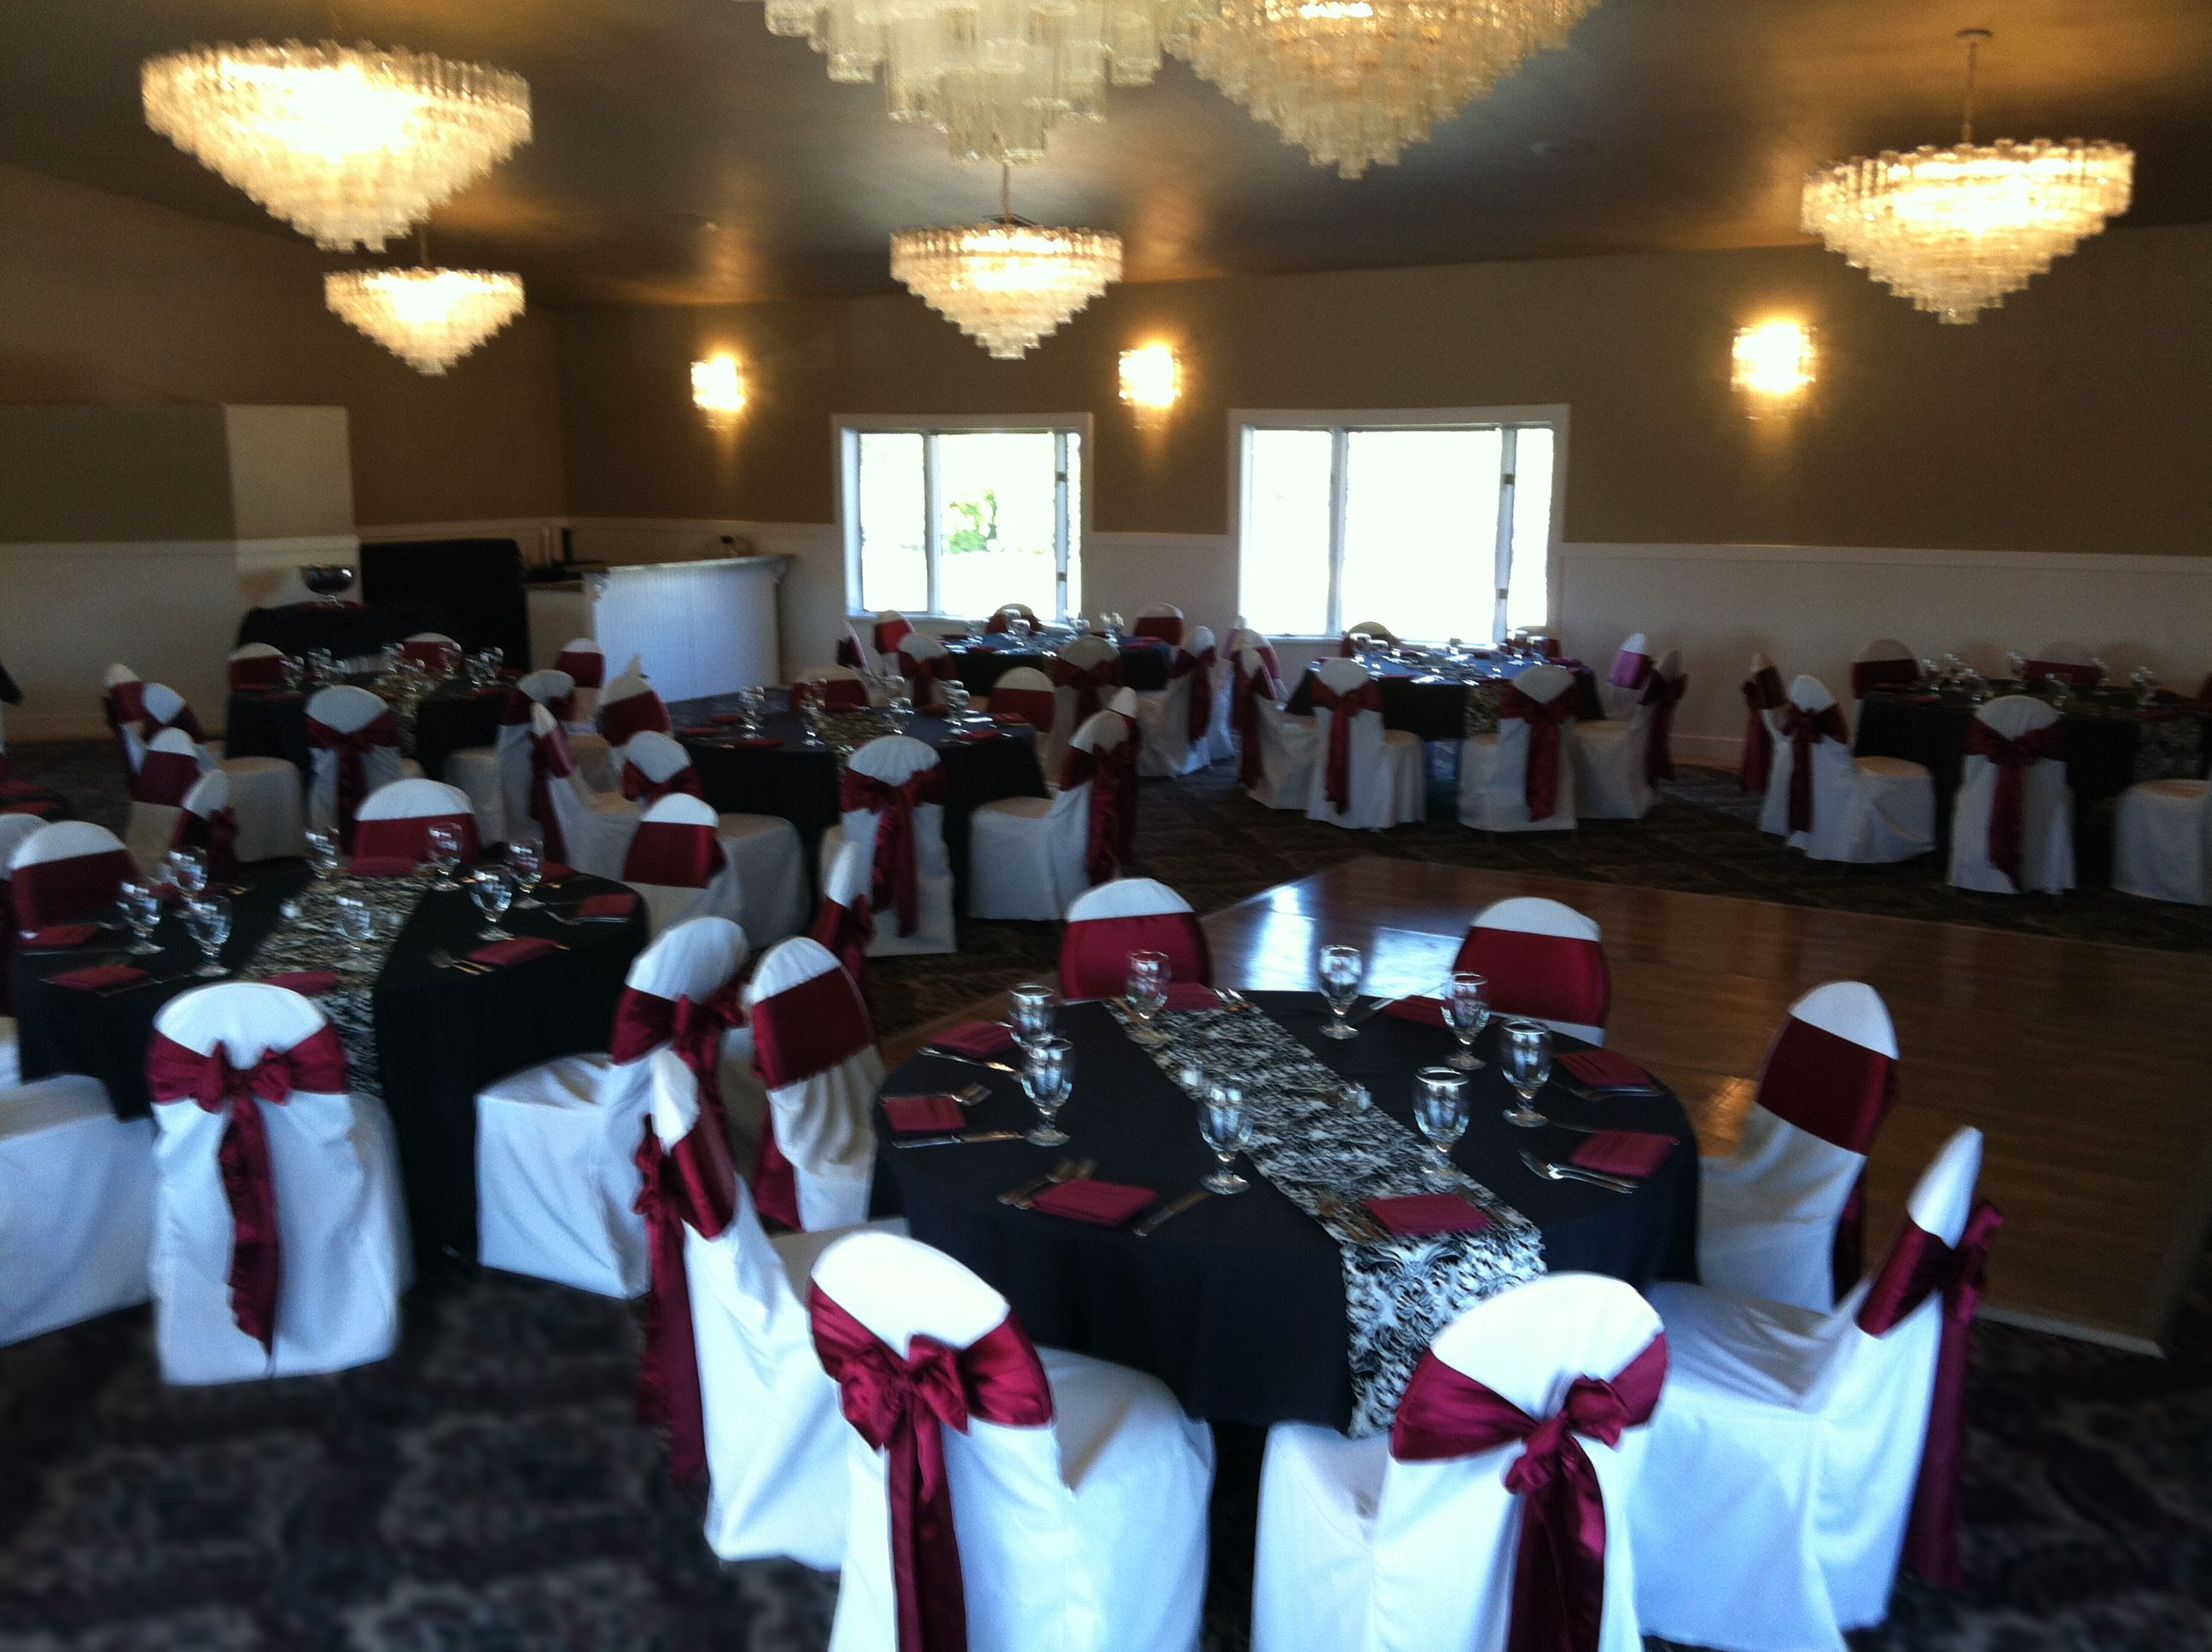 BURGANDY AND BLACK WEDDING TABLE SETTINGS | Black Table Cloths With Burgundy  Napkins, Water Goblet